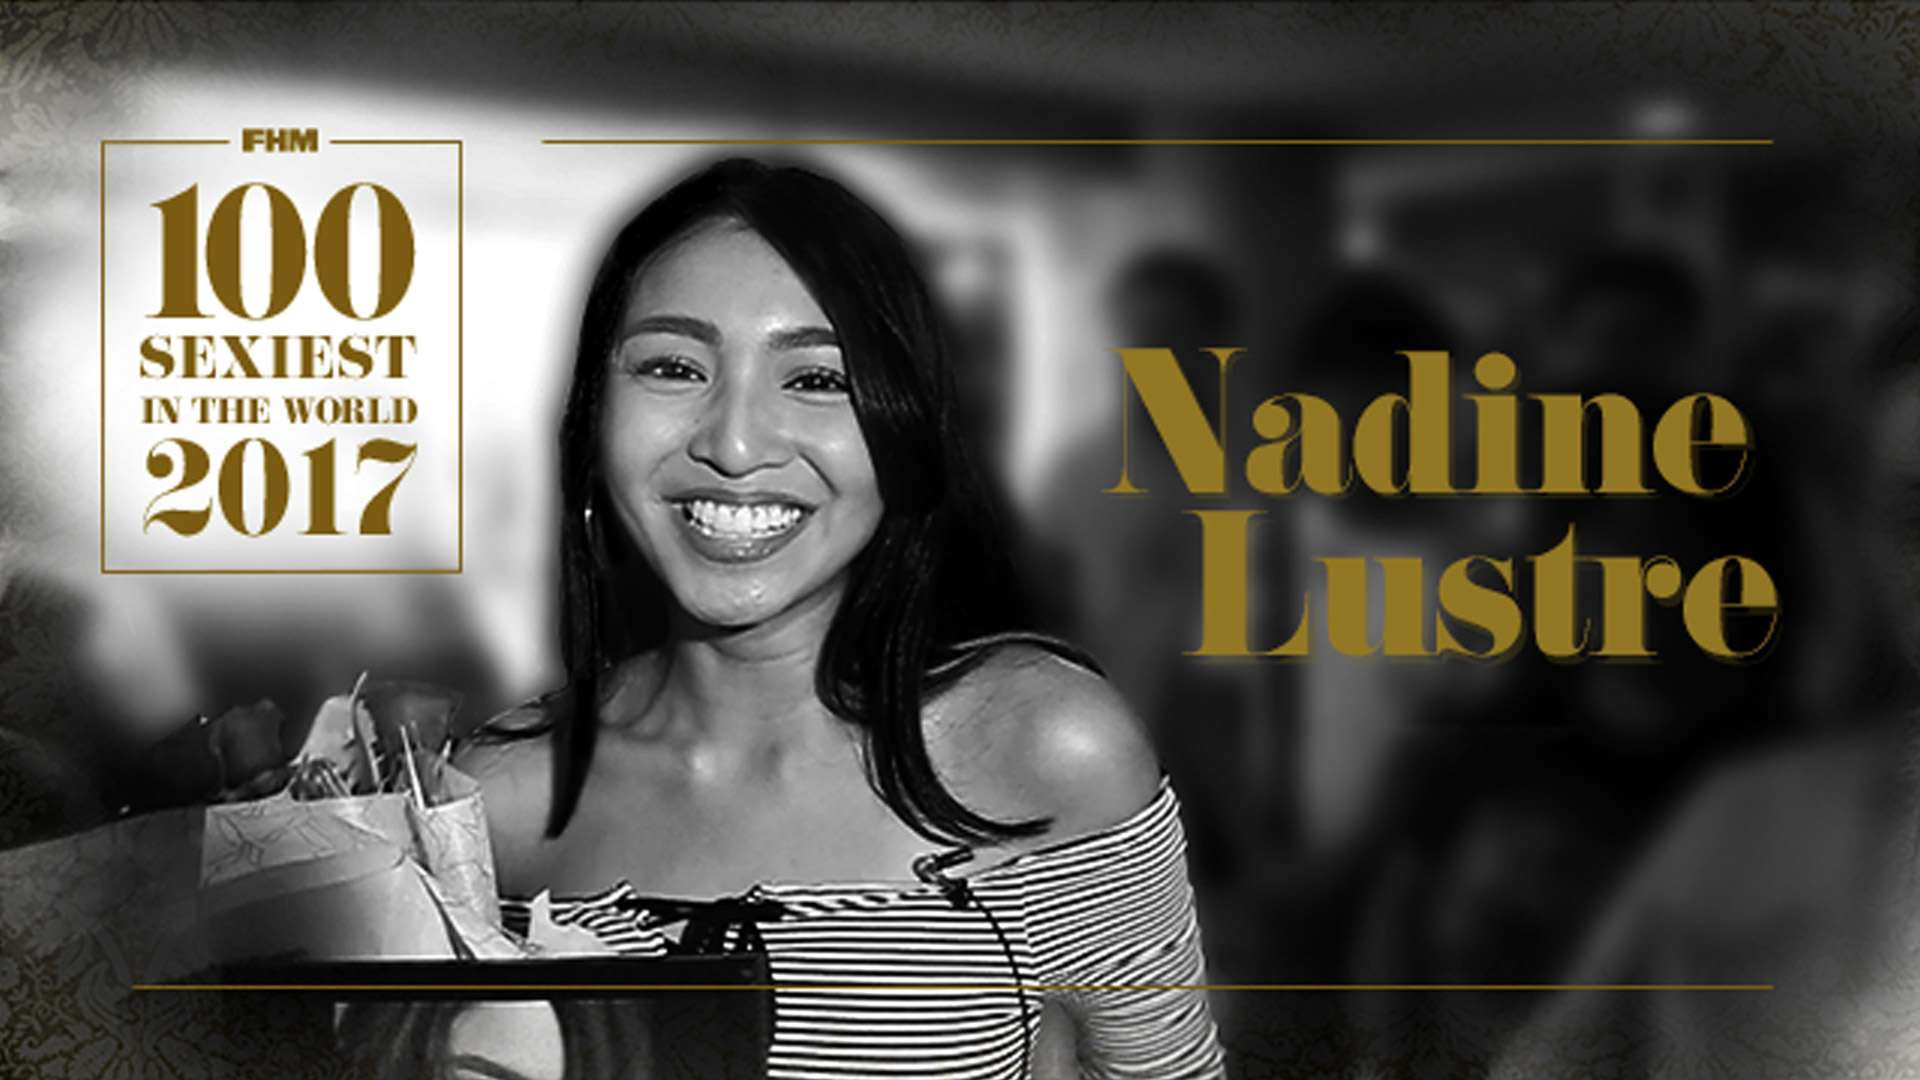 Nadine Lustre, Sexiest In The Land, Has A Message For FHM Nation